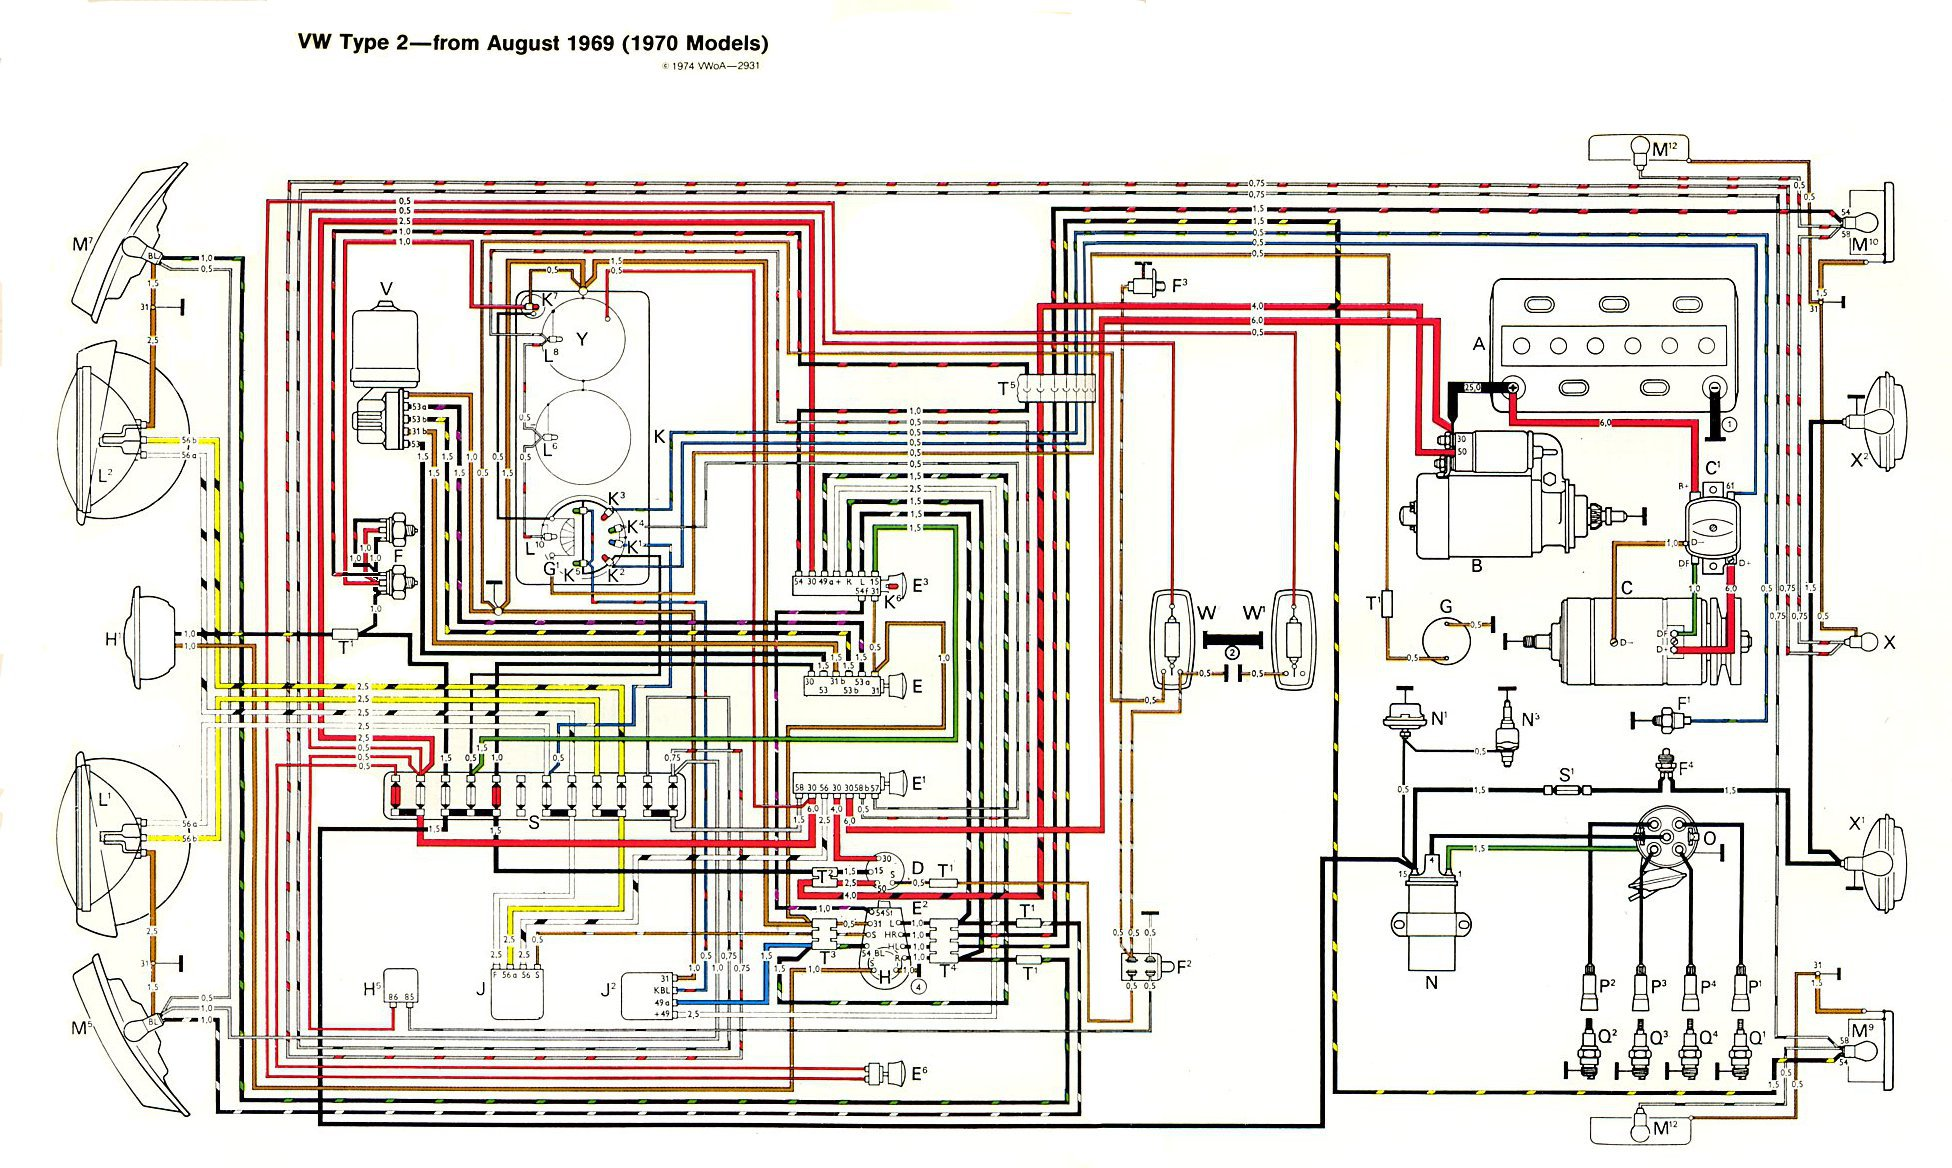 2002 Cadillac Deville Stereo Wiring Diagram likewise Page together with Water Pump Location 2002 Explorer also Bad Boy Wiring Diagram additionally 48f1y Intermittent Failure Headlights High Beam. on 1994 cadillac deville wiring diagram